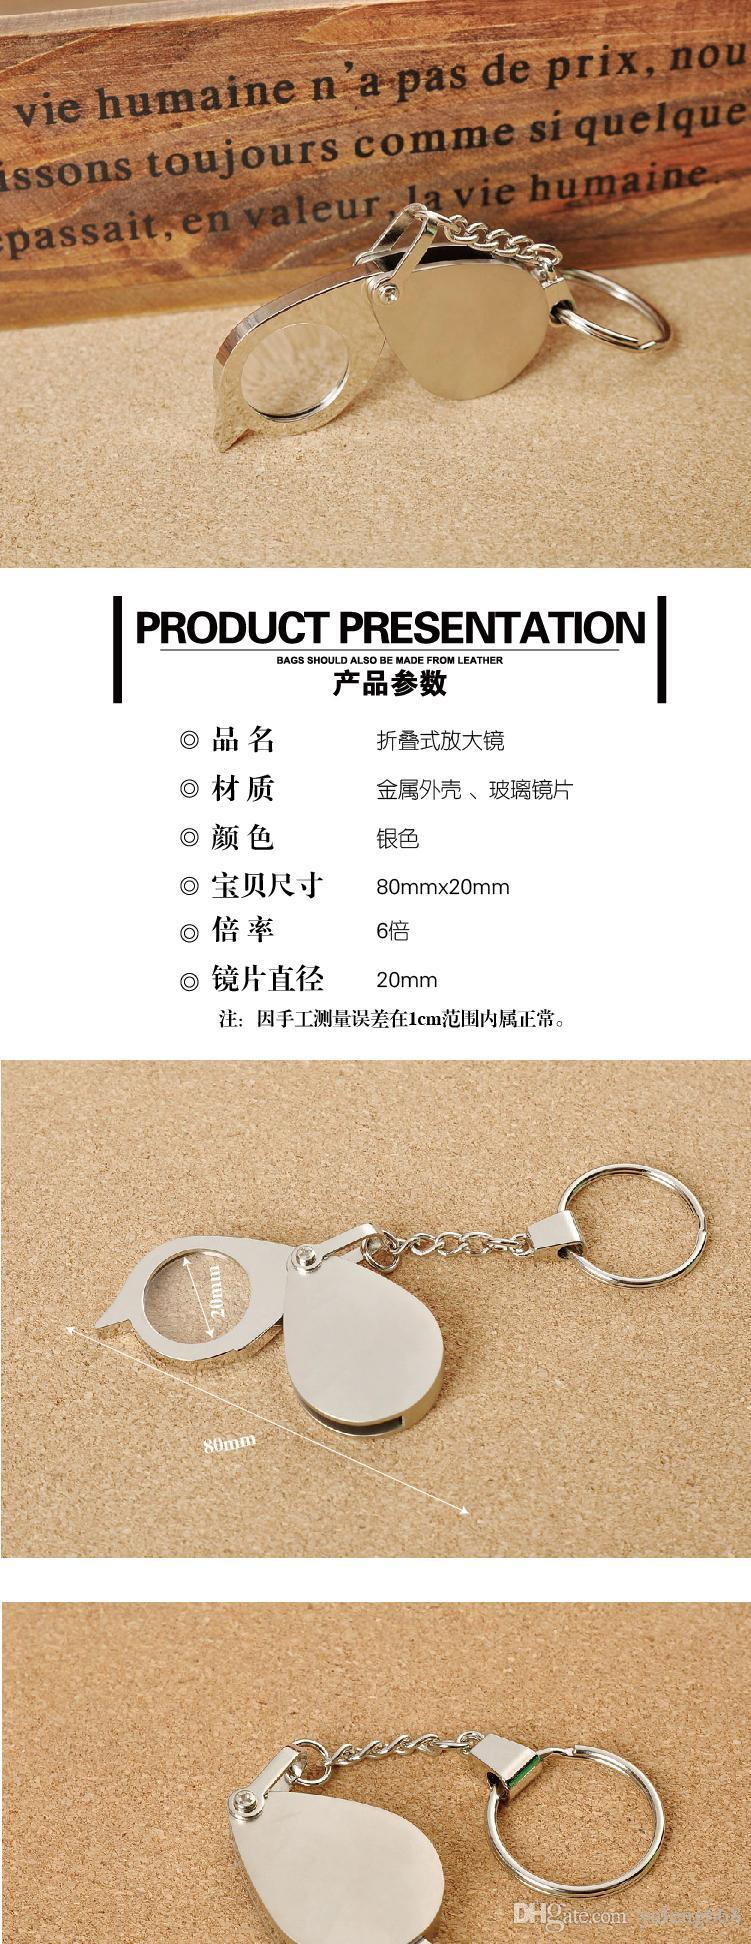 Metal key ring, magnifying glass, promotional materials, multi function, key ring, company, gift, advertisement, advertisement, key ring